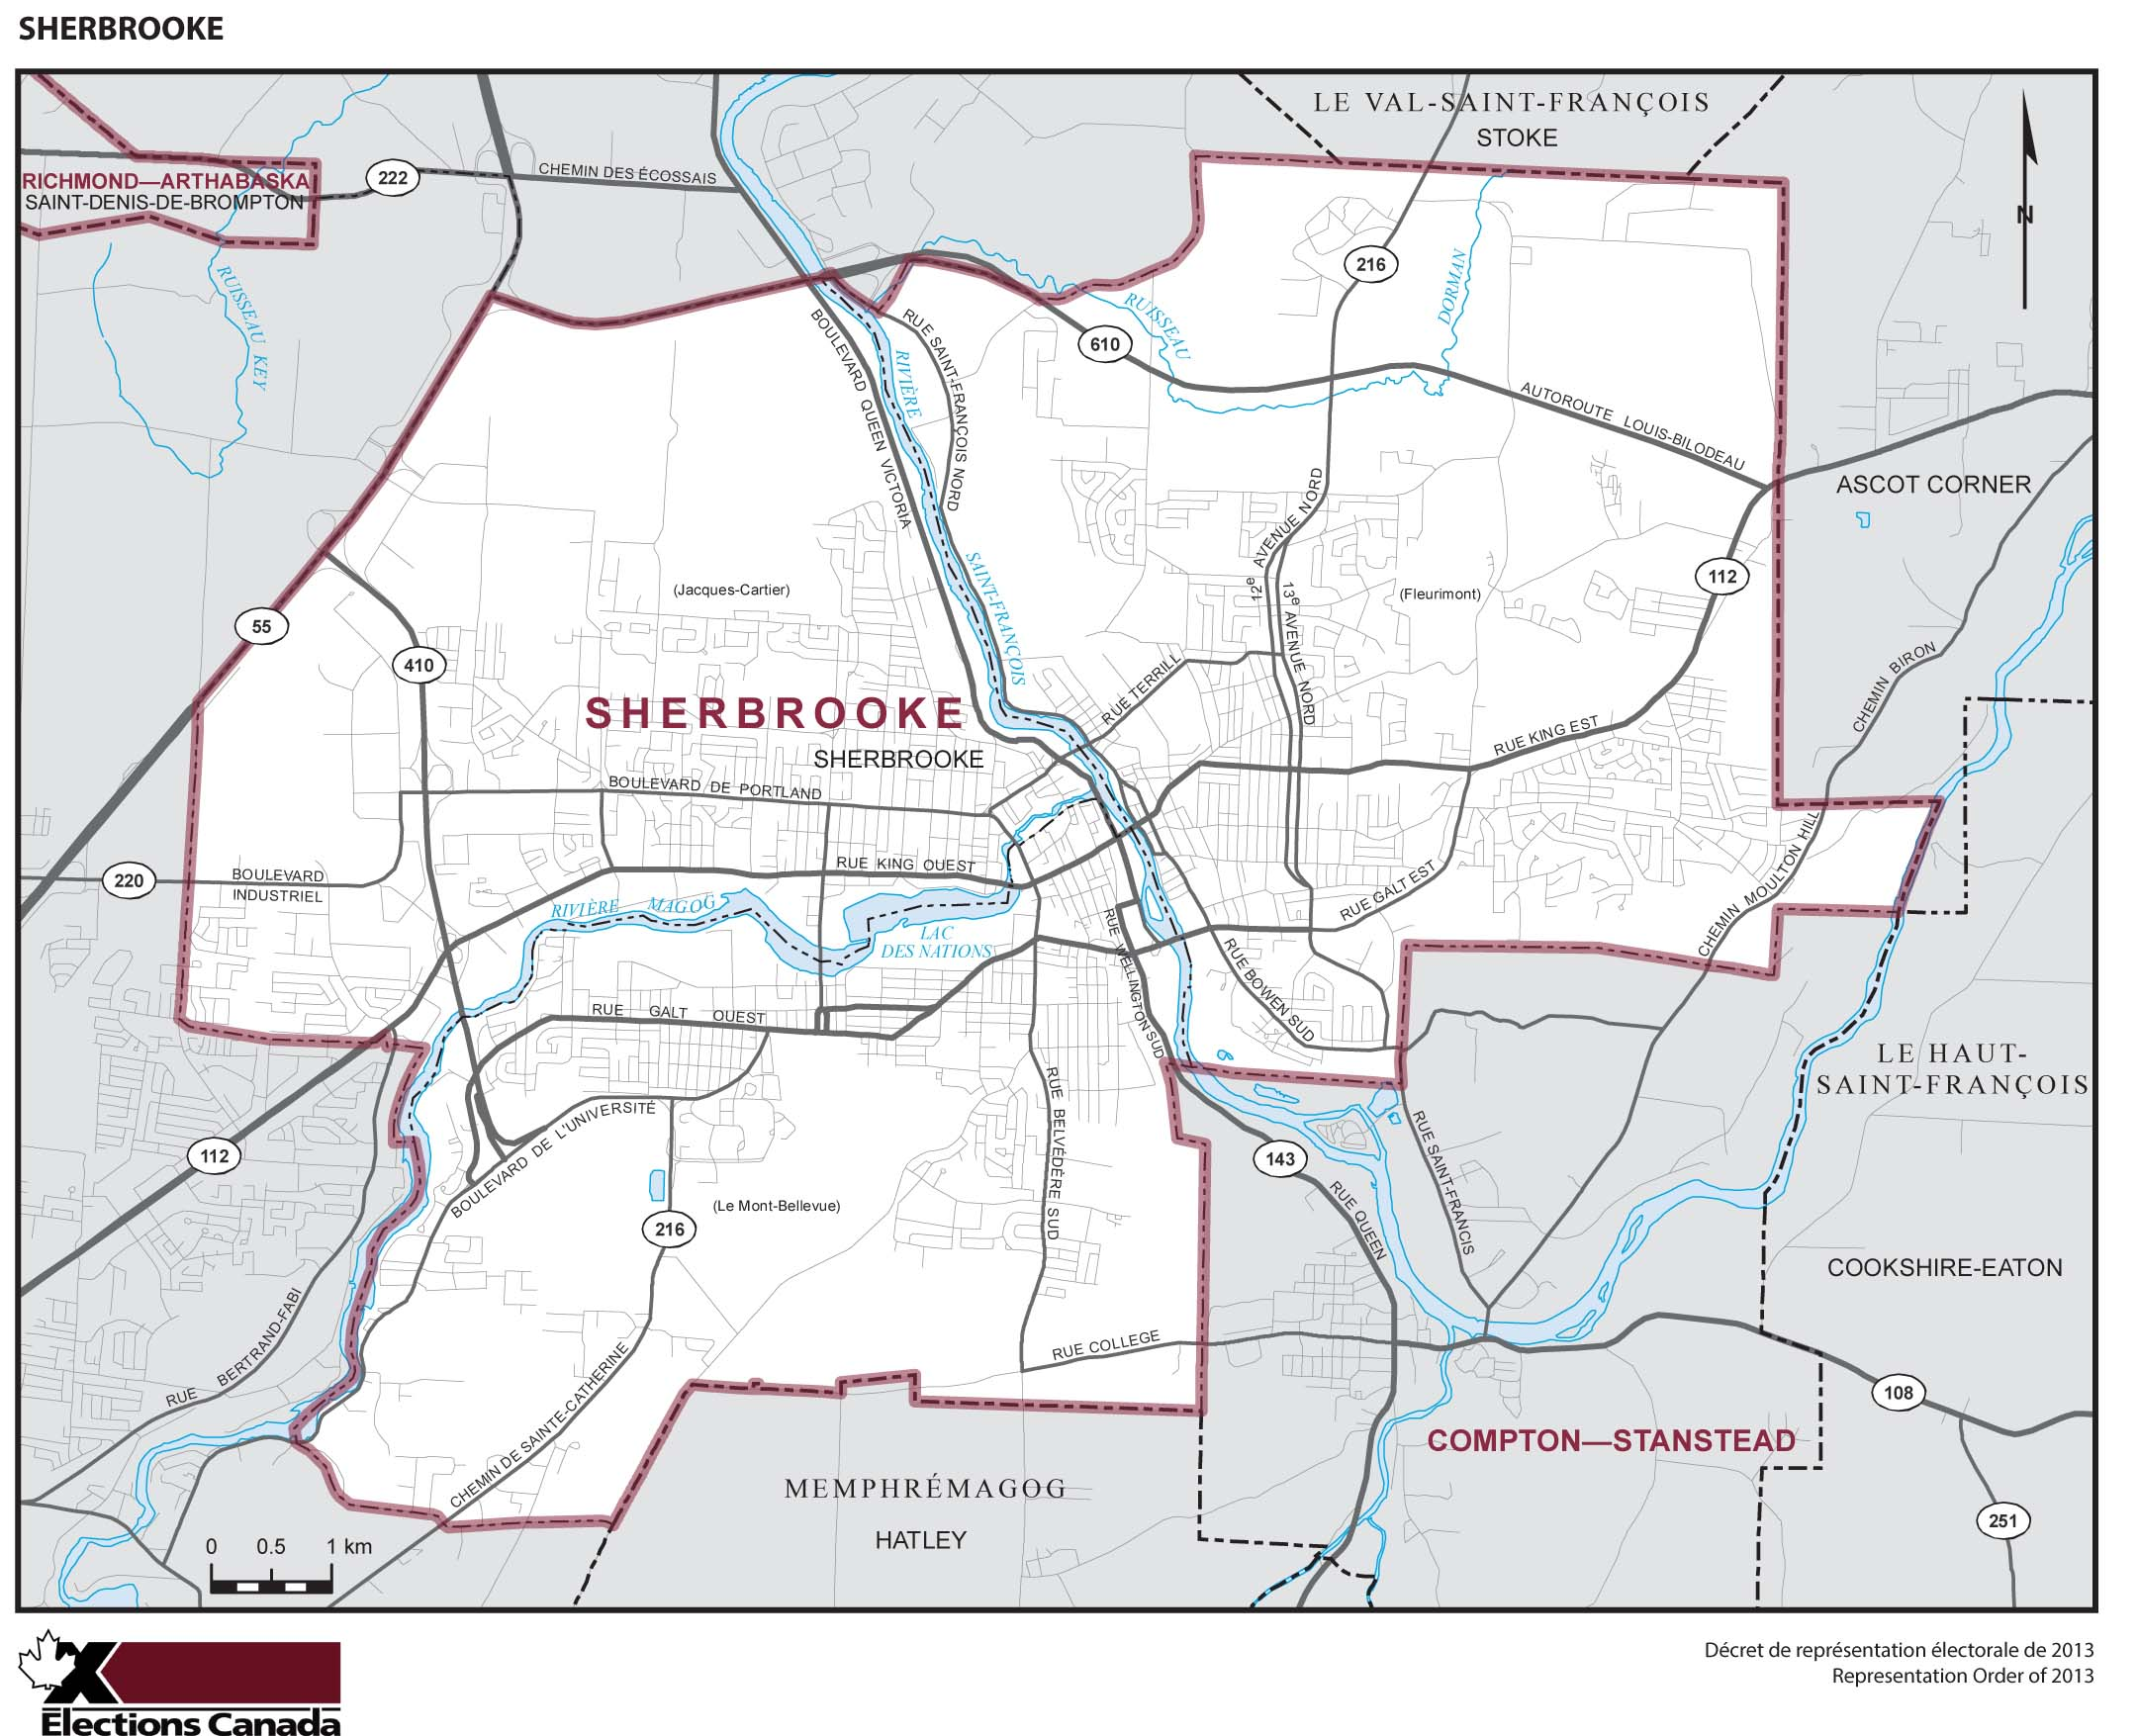 Map: Sherbrooke, Federal electoral district, 2013 Representation Order (in white), Quebec